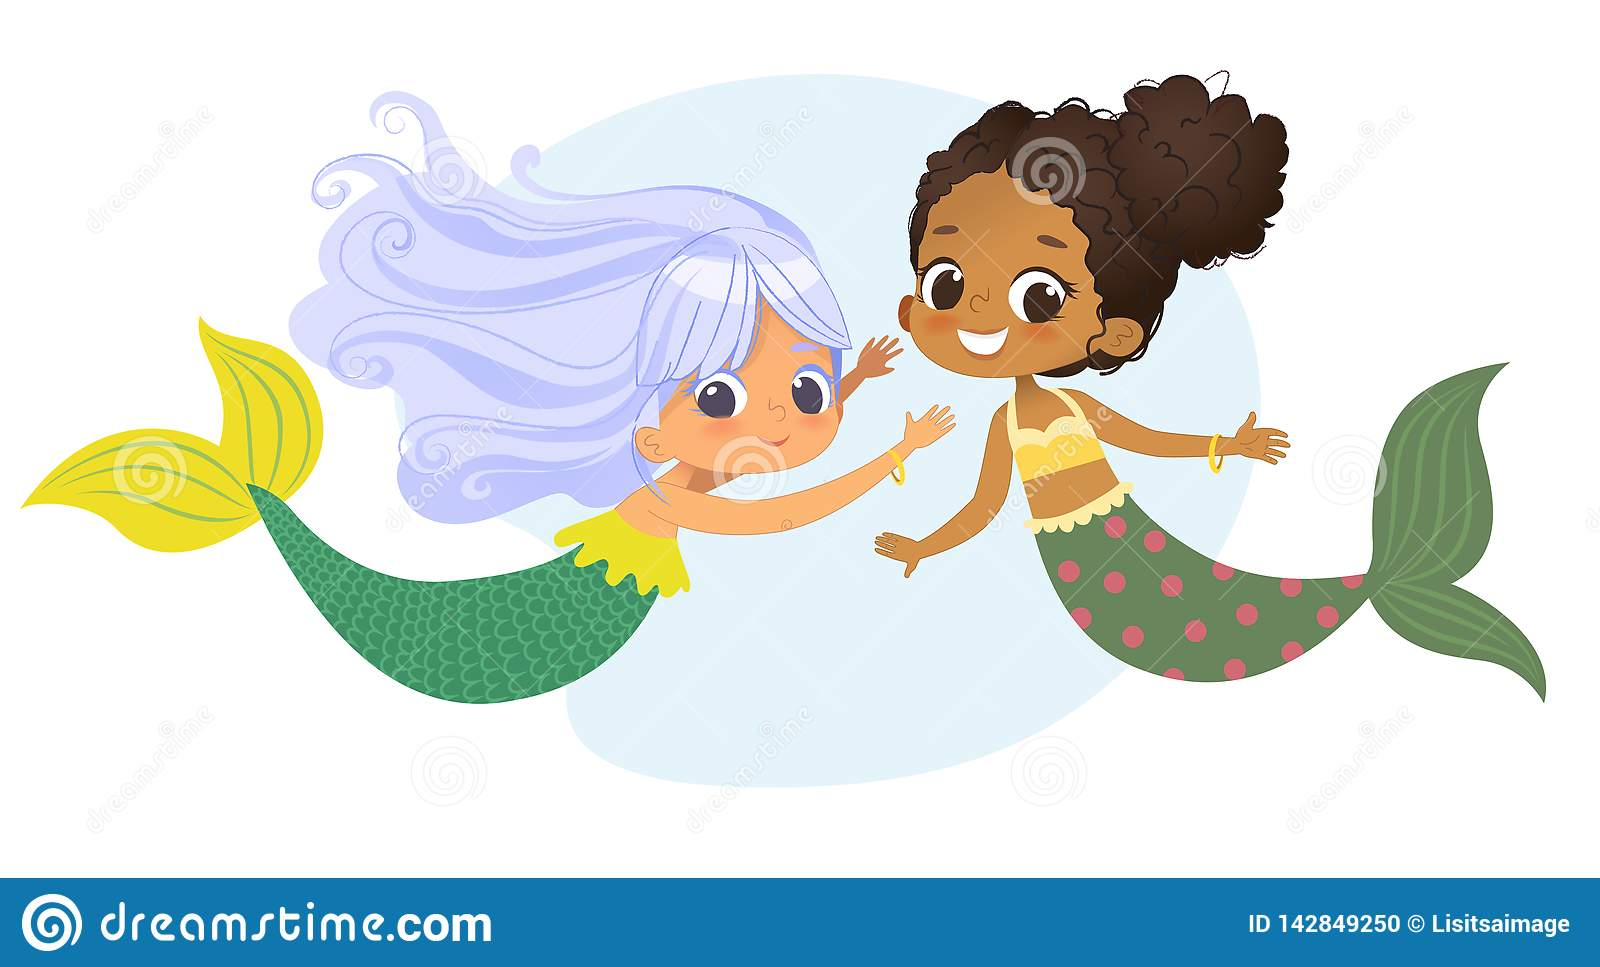 Mermaid African Caucasian Character Friend Nymph. Young Underwater African American Female Cute Mythology Princess